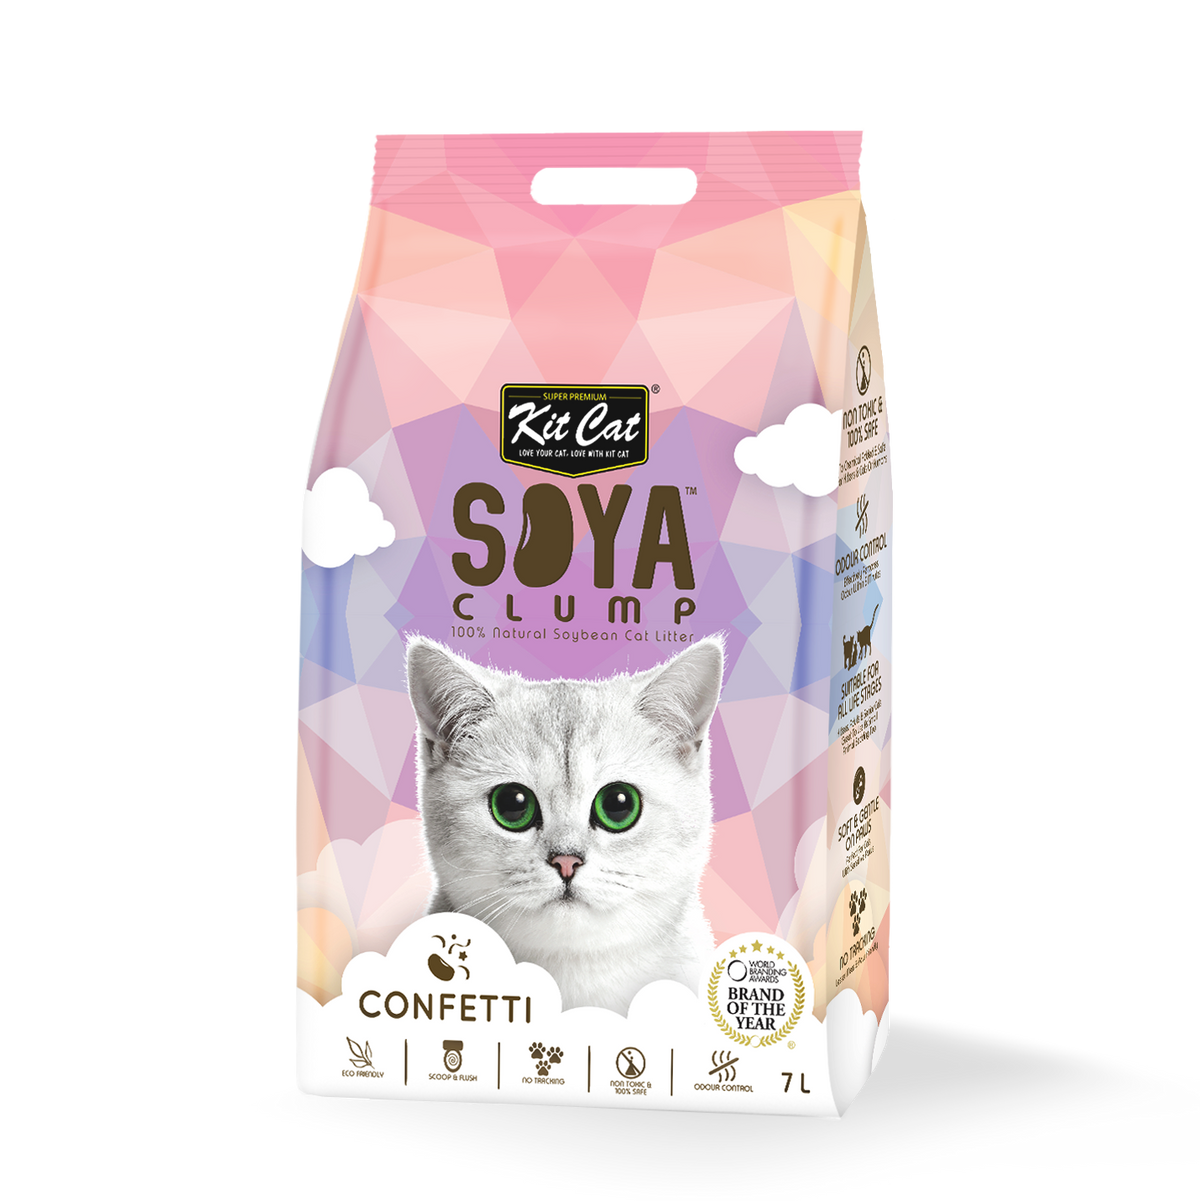 Kit Cat Soya Clump Confetti